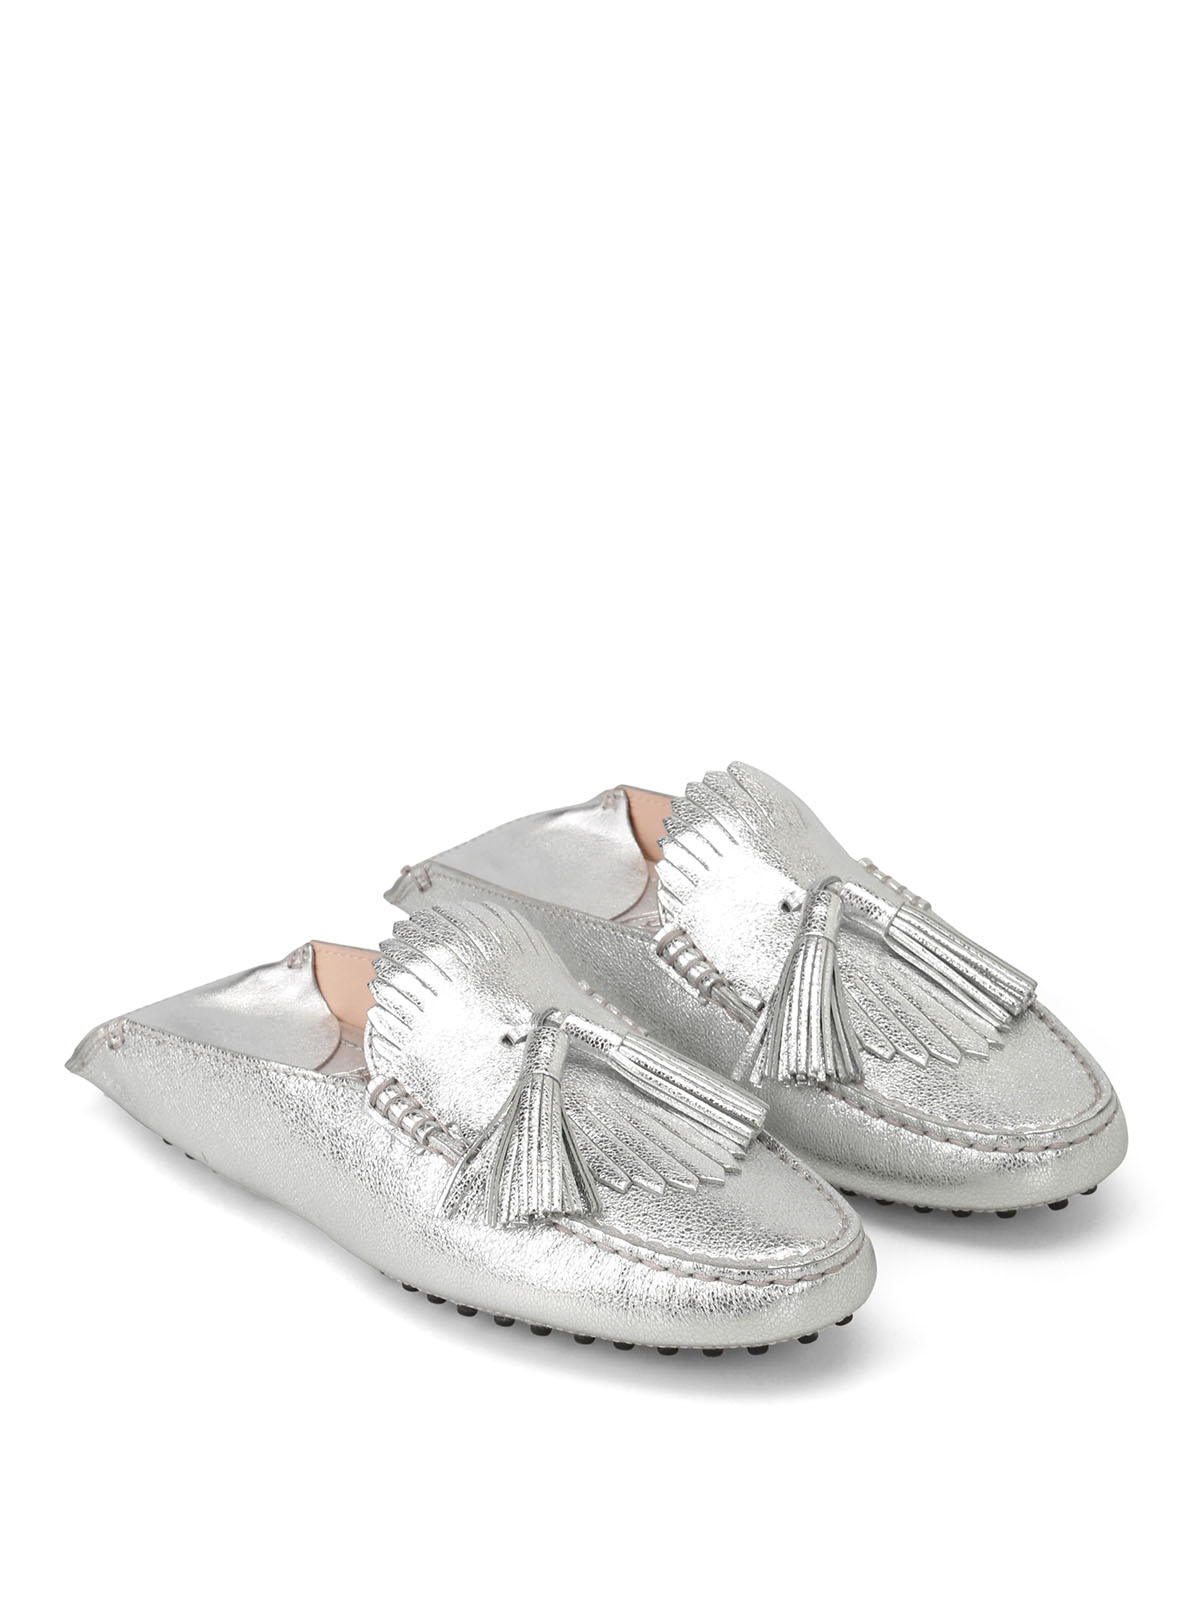 be09a1ace2d Tod S - Silver leather tasselled slippers - Loafers   Slippers ...